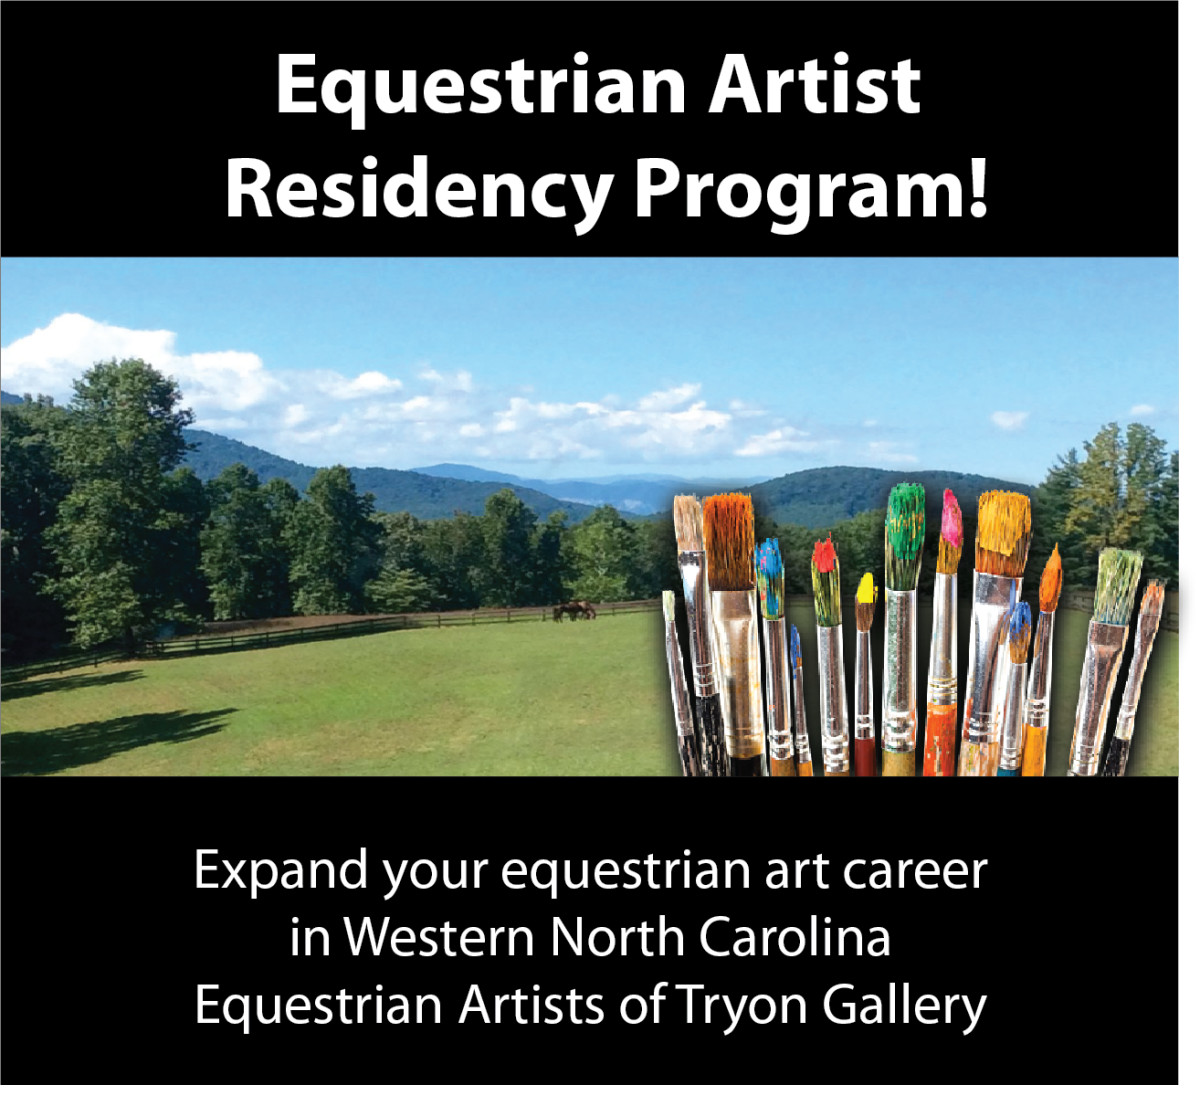 Equestrian Artist Residency Program